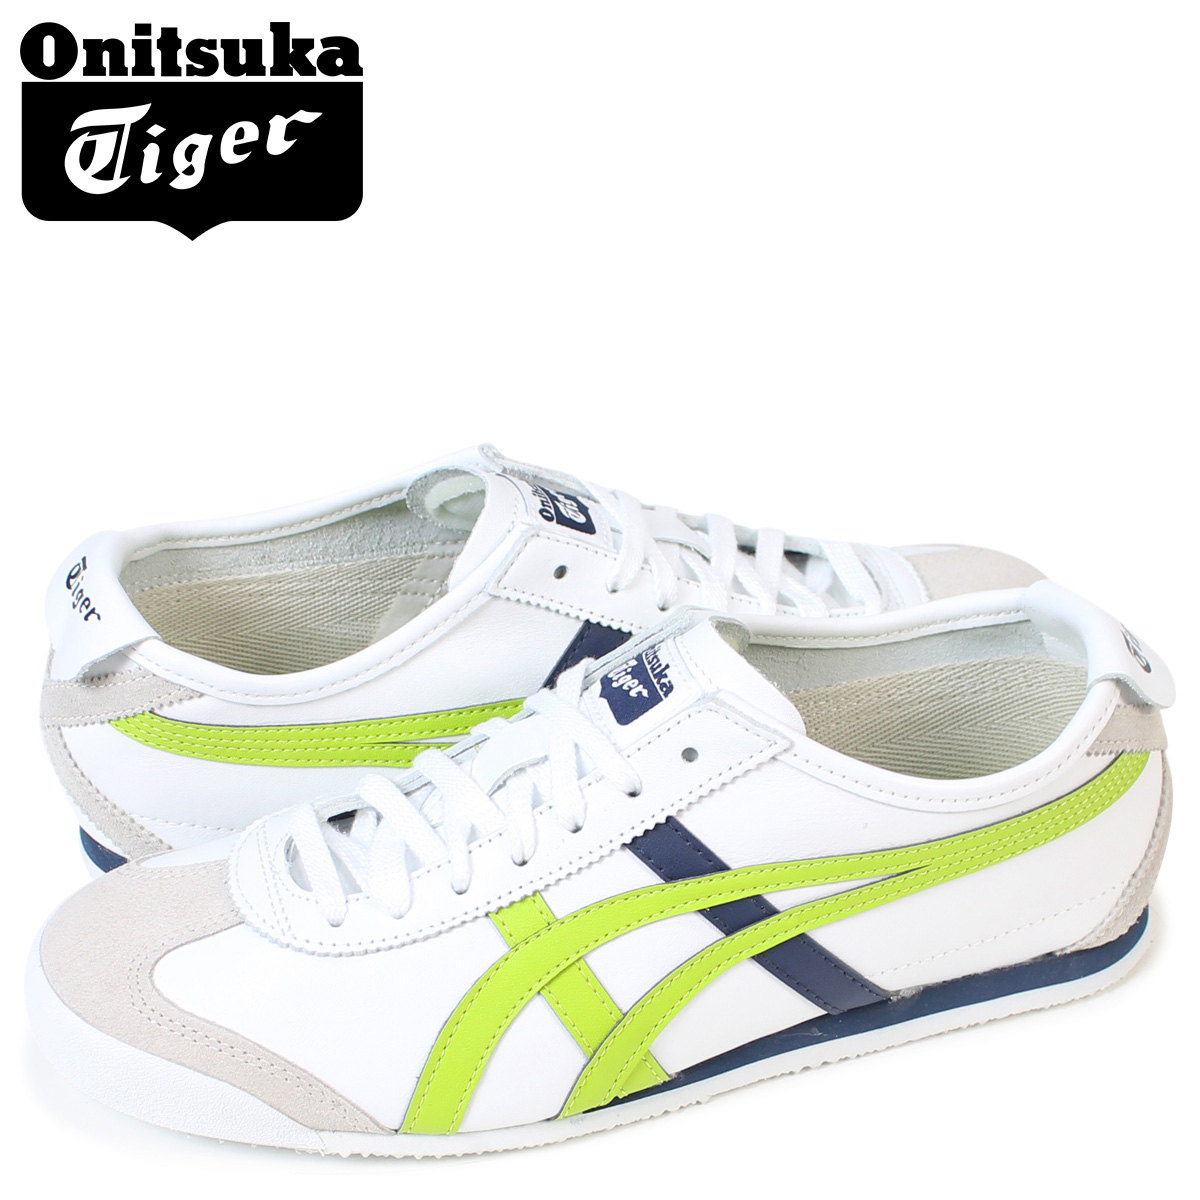 online retailer 05540 c1fa0 Onitsuka Tiger Mexico 66 Onitsuka tiger MEXICO 66 men's sneakers ASICS  HL474-0187 shoes white [load planned Shinnyu load in reservation product  9/26 ...